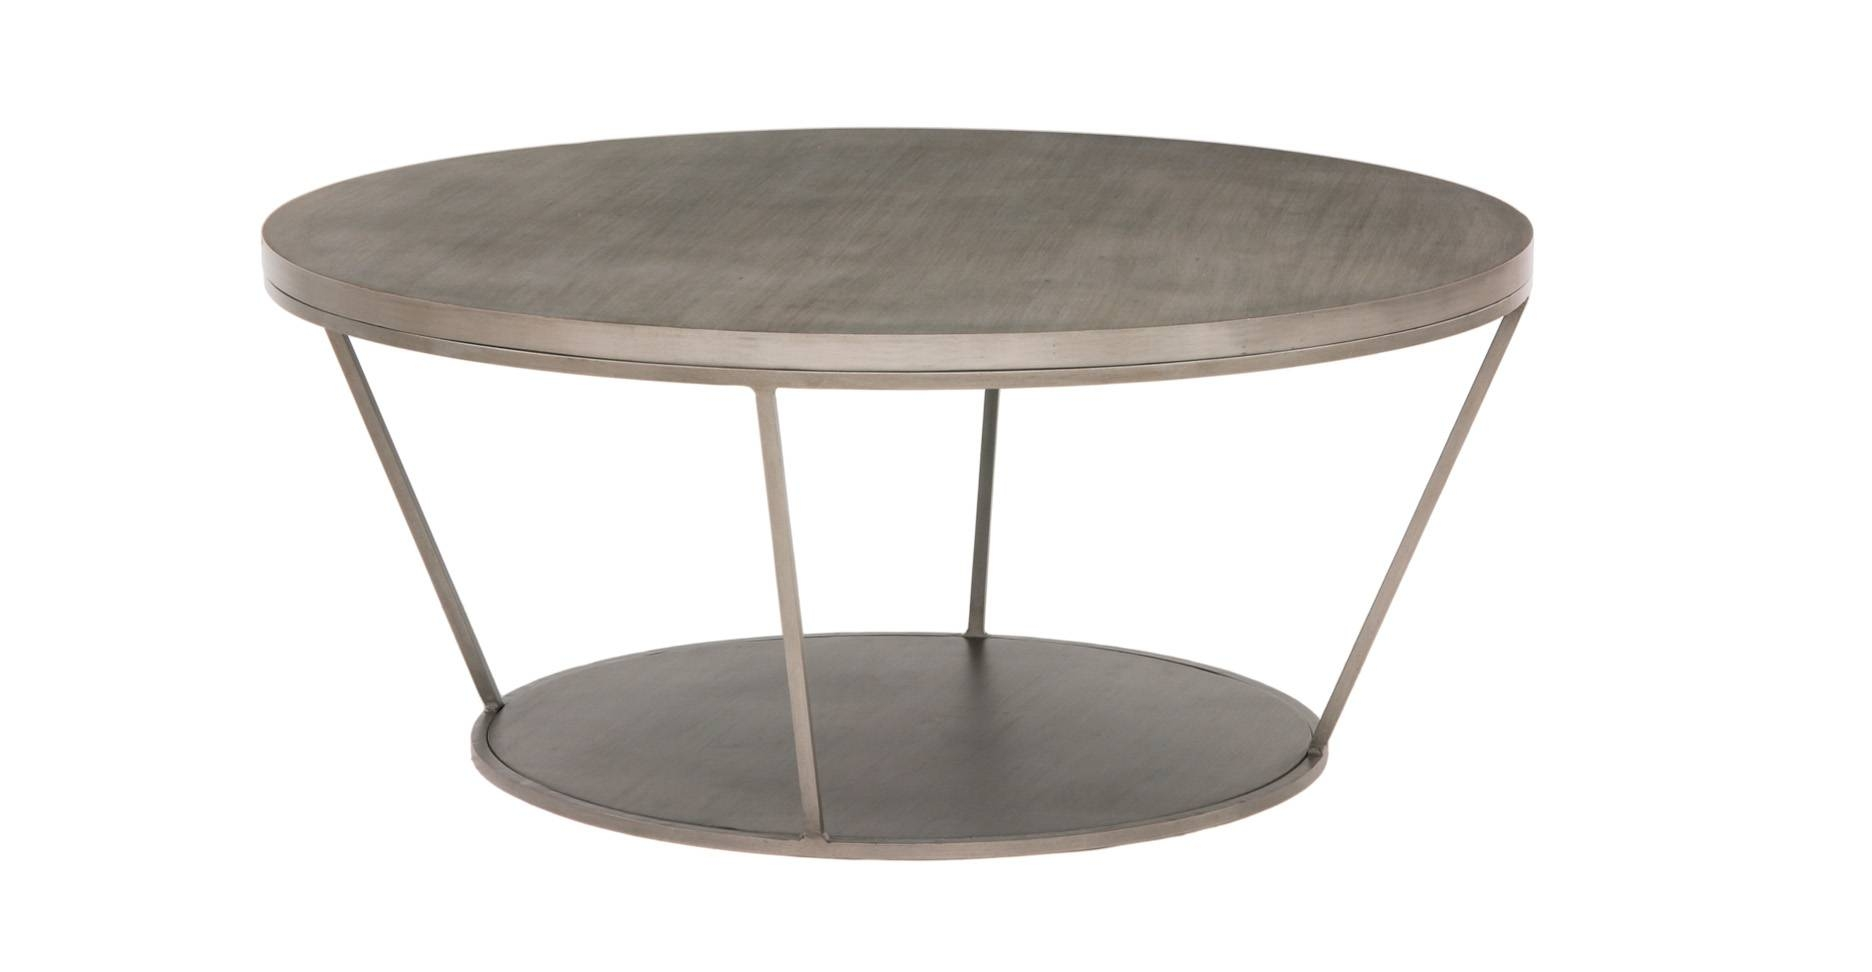 Coffee Table: Simple Round Coffee Table Designs Small Round Coffee Pertaining To Metal Round Coffee Tables (View 6 of 12)